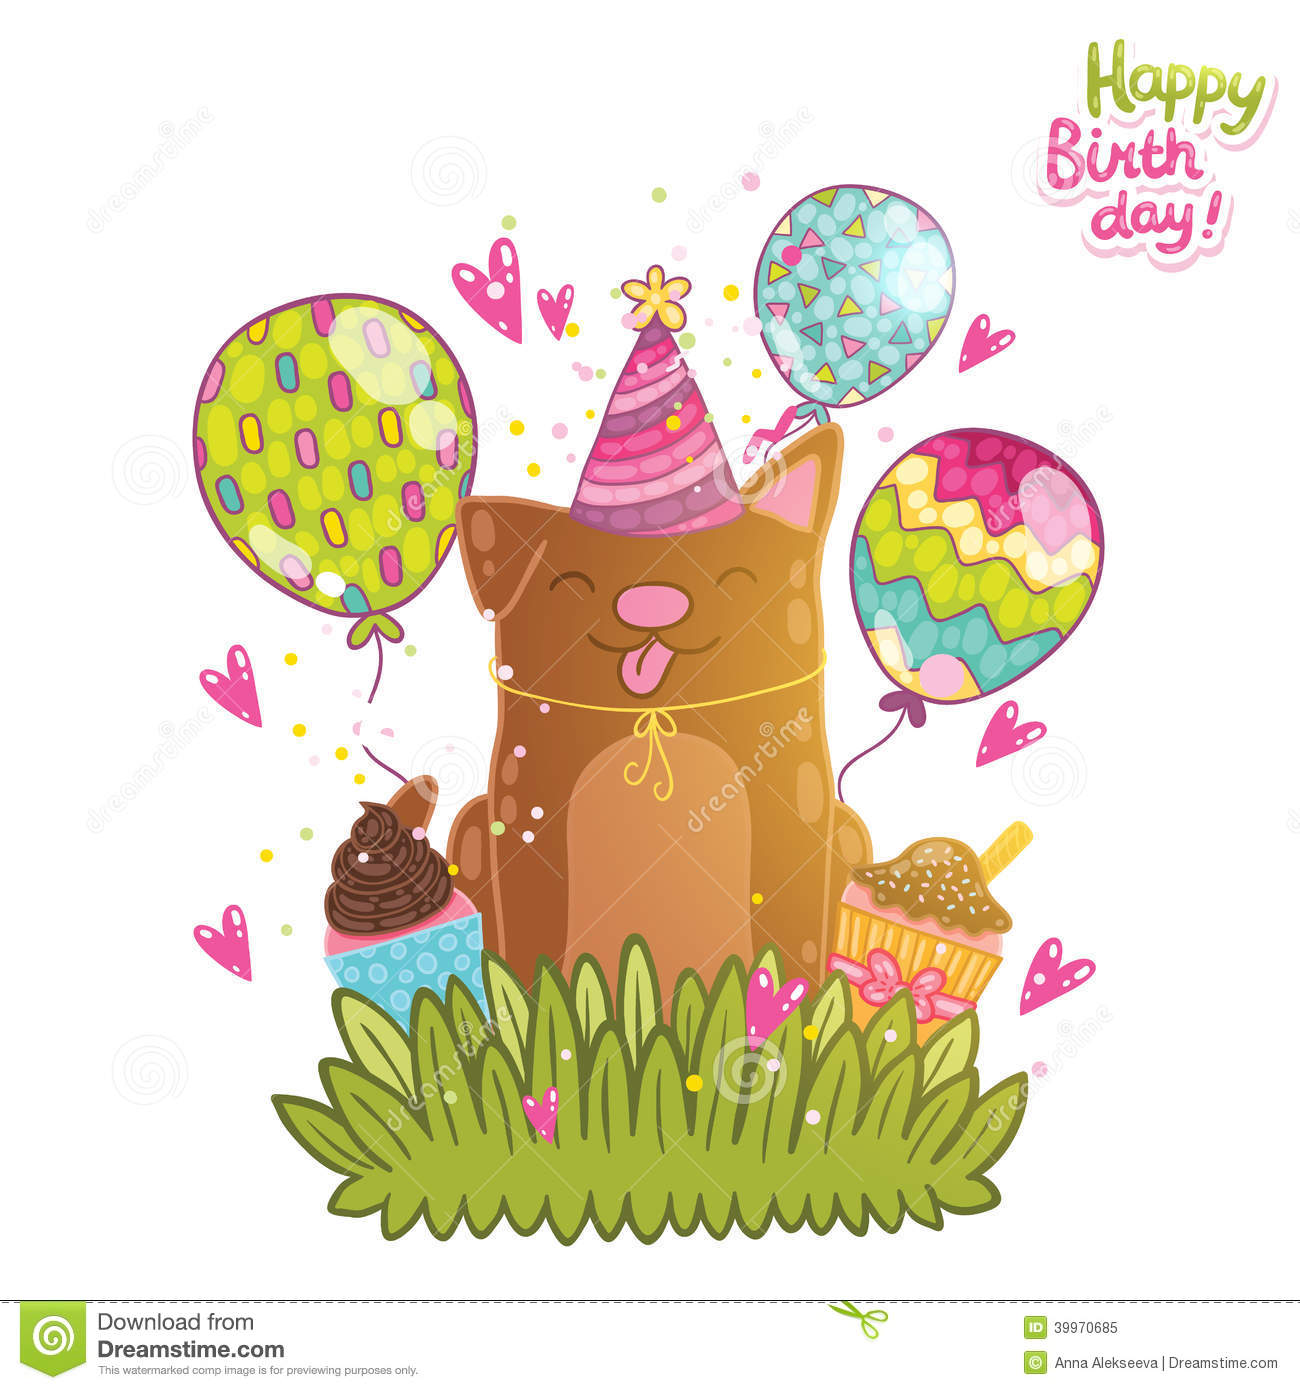 Happy Birthday Card Background With A Dog Vector Image – Happy Birthday Dog Card